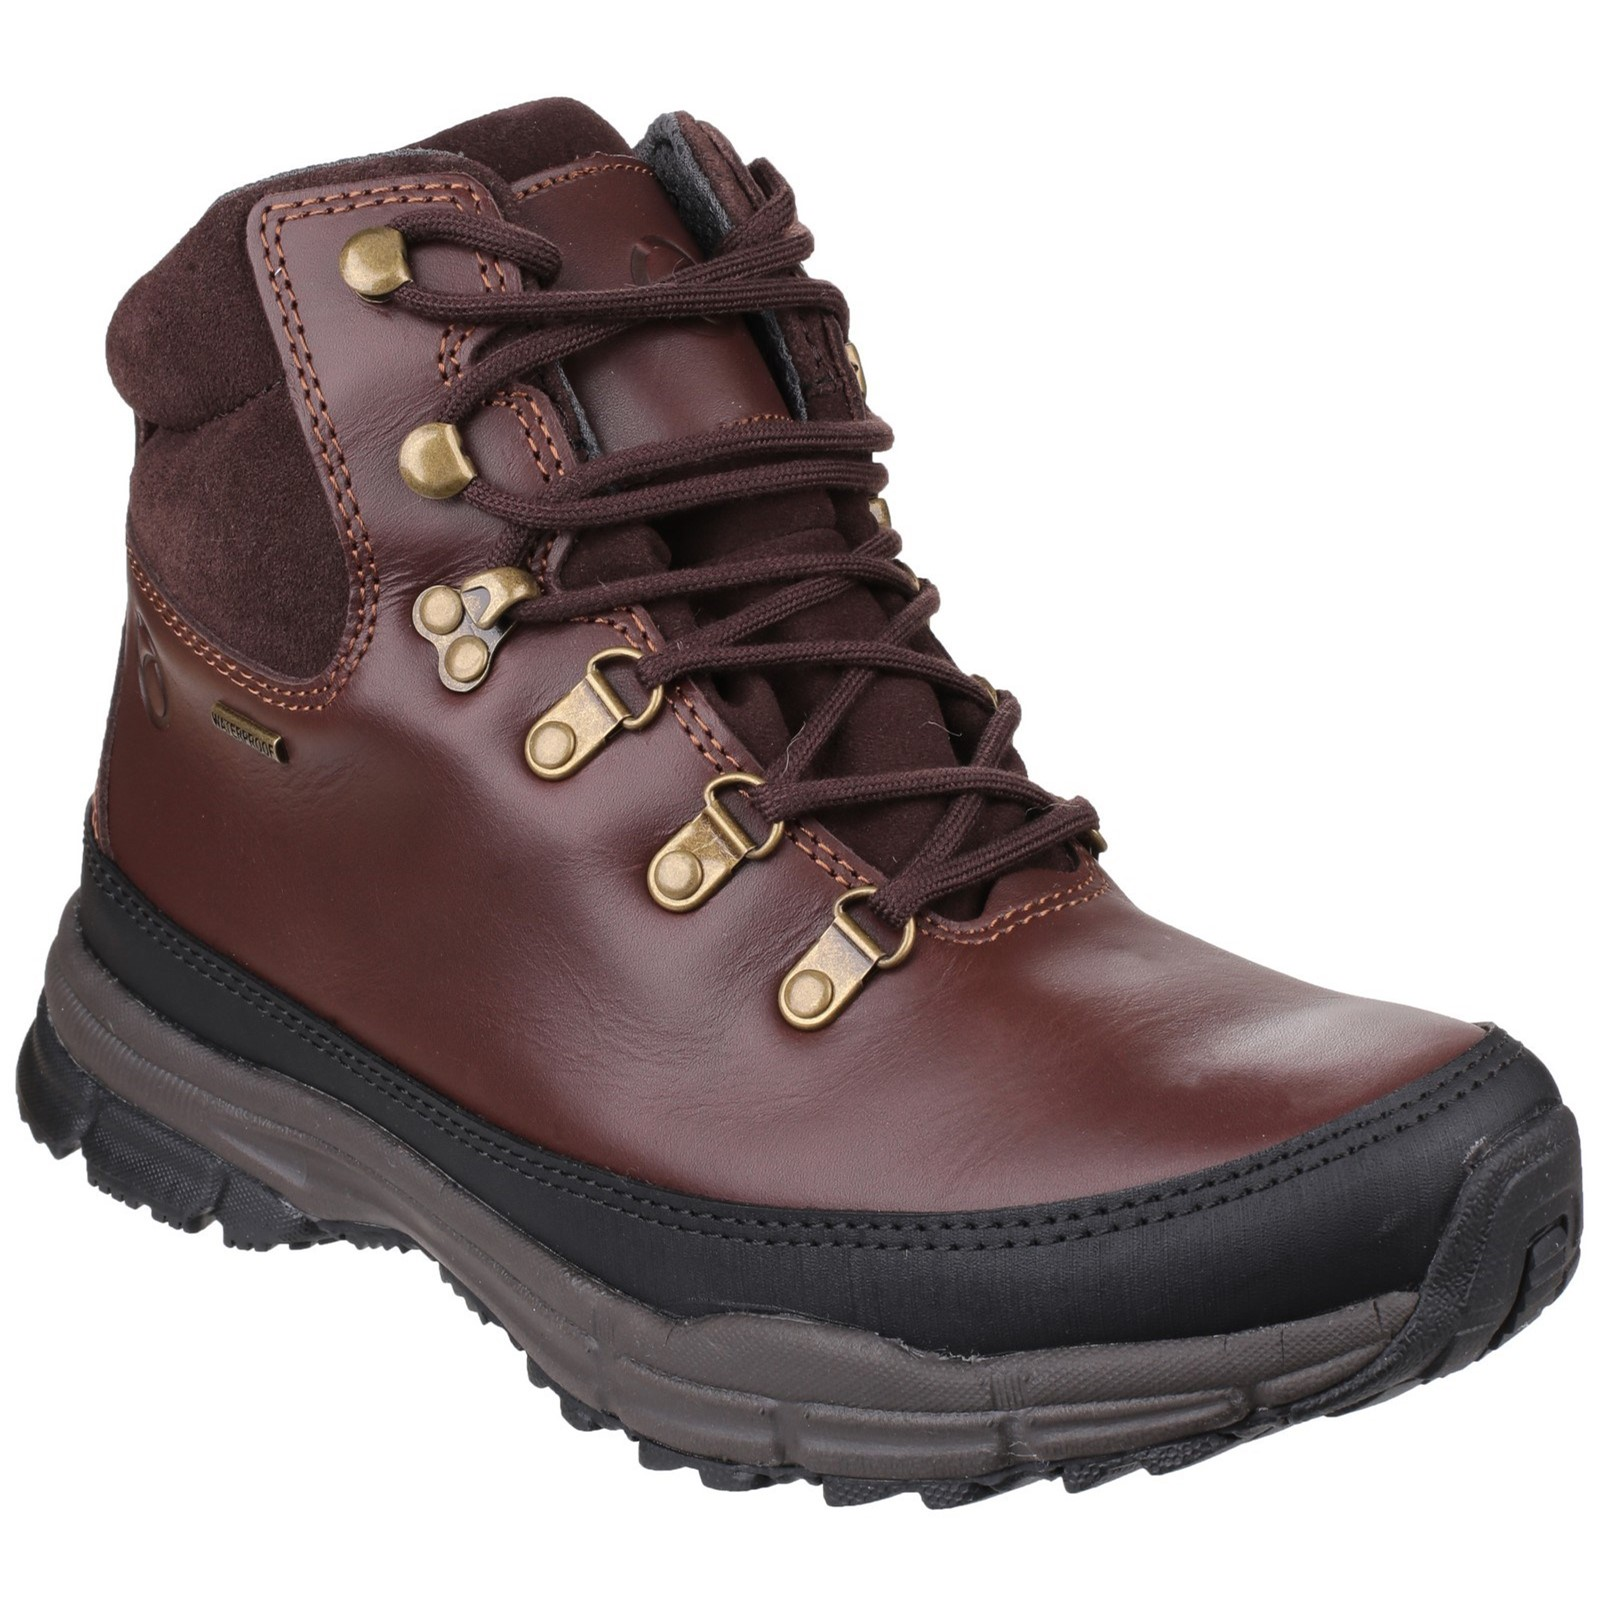 Cotswold Unisex Beacon Hiking shoes